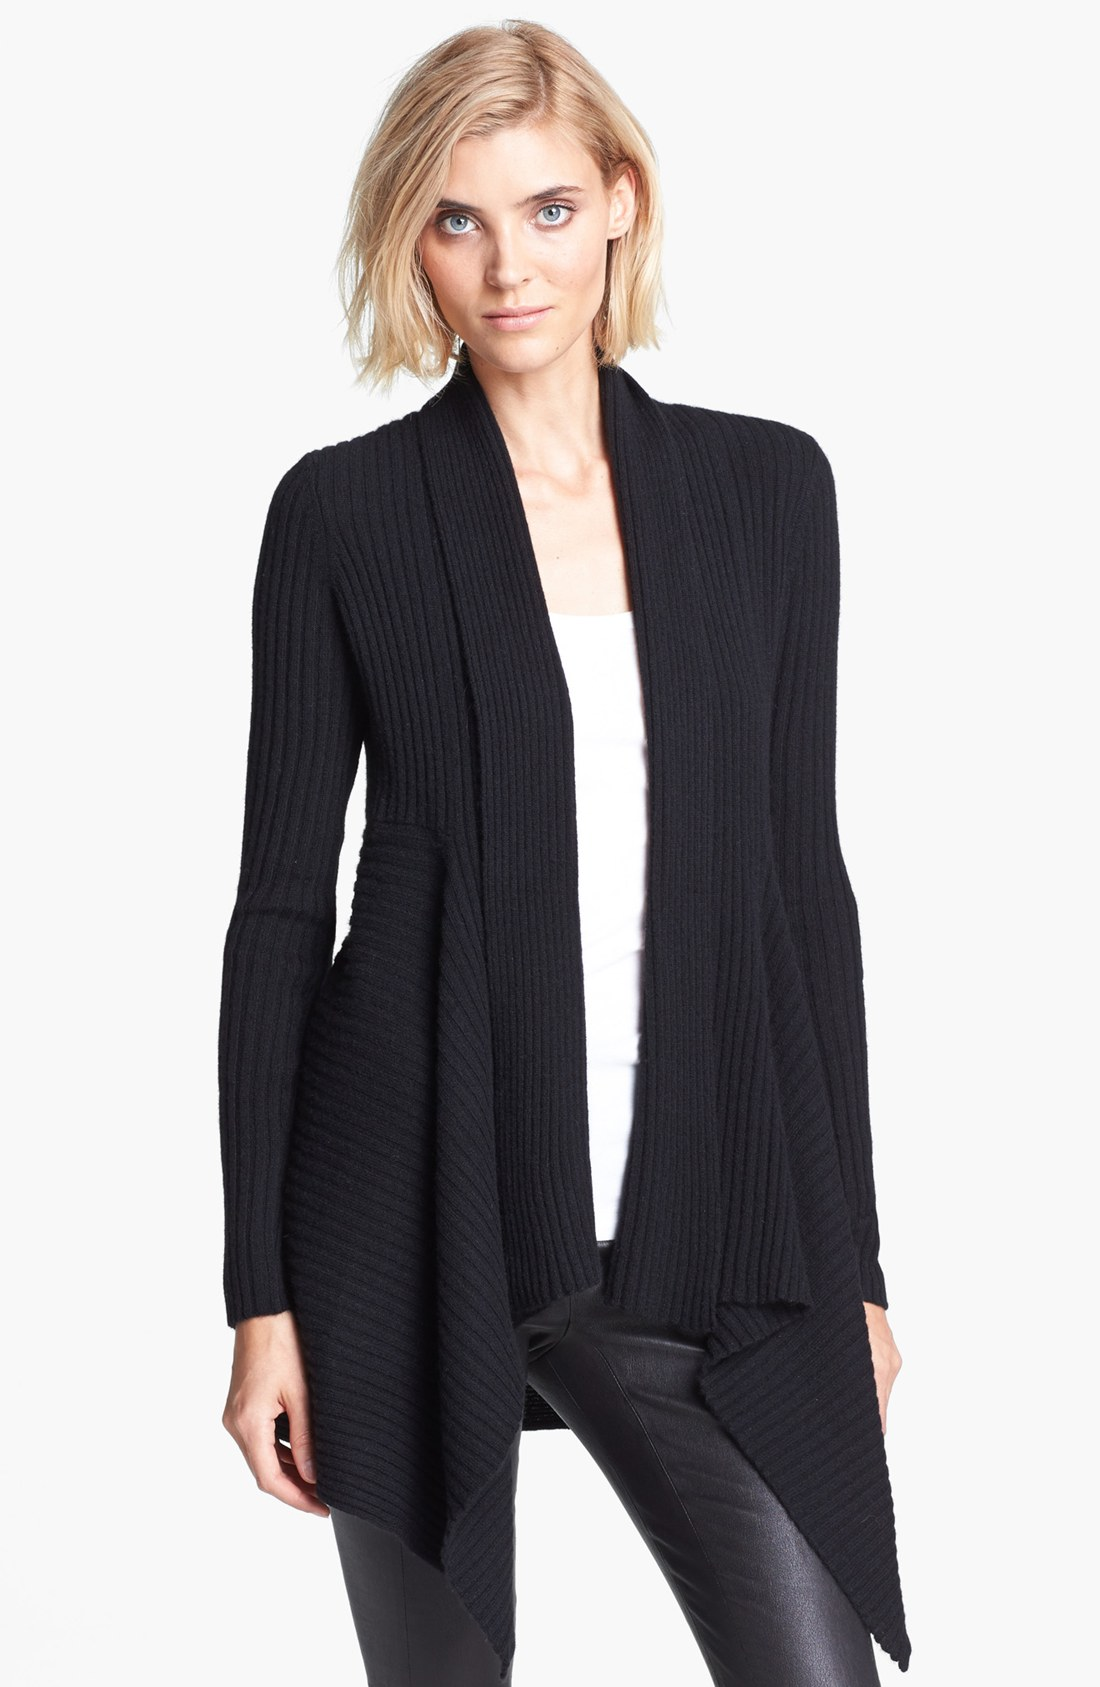 You searched for: black drape cardigan! Etsy is the home to thousands of handmade, vintage, and one-of-a-kind products and gifts related to your search. No matter what you're looking for or where you are in the world, our global marketplace of sellers can help you .